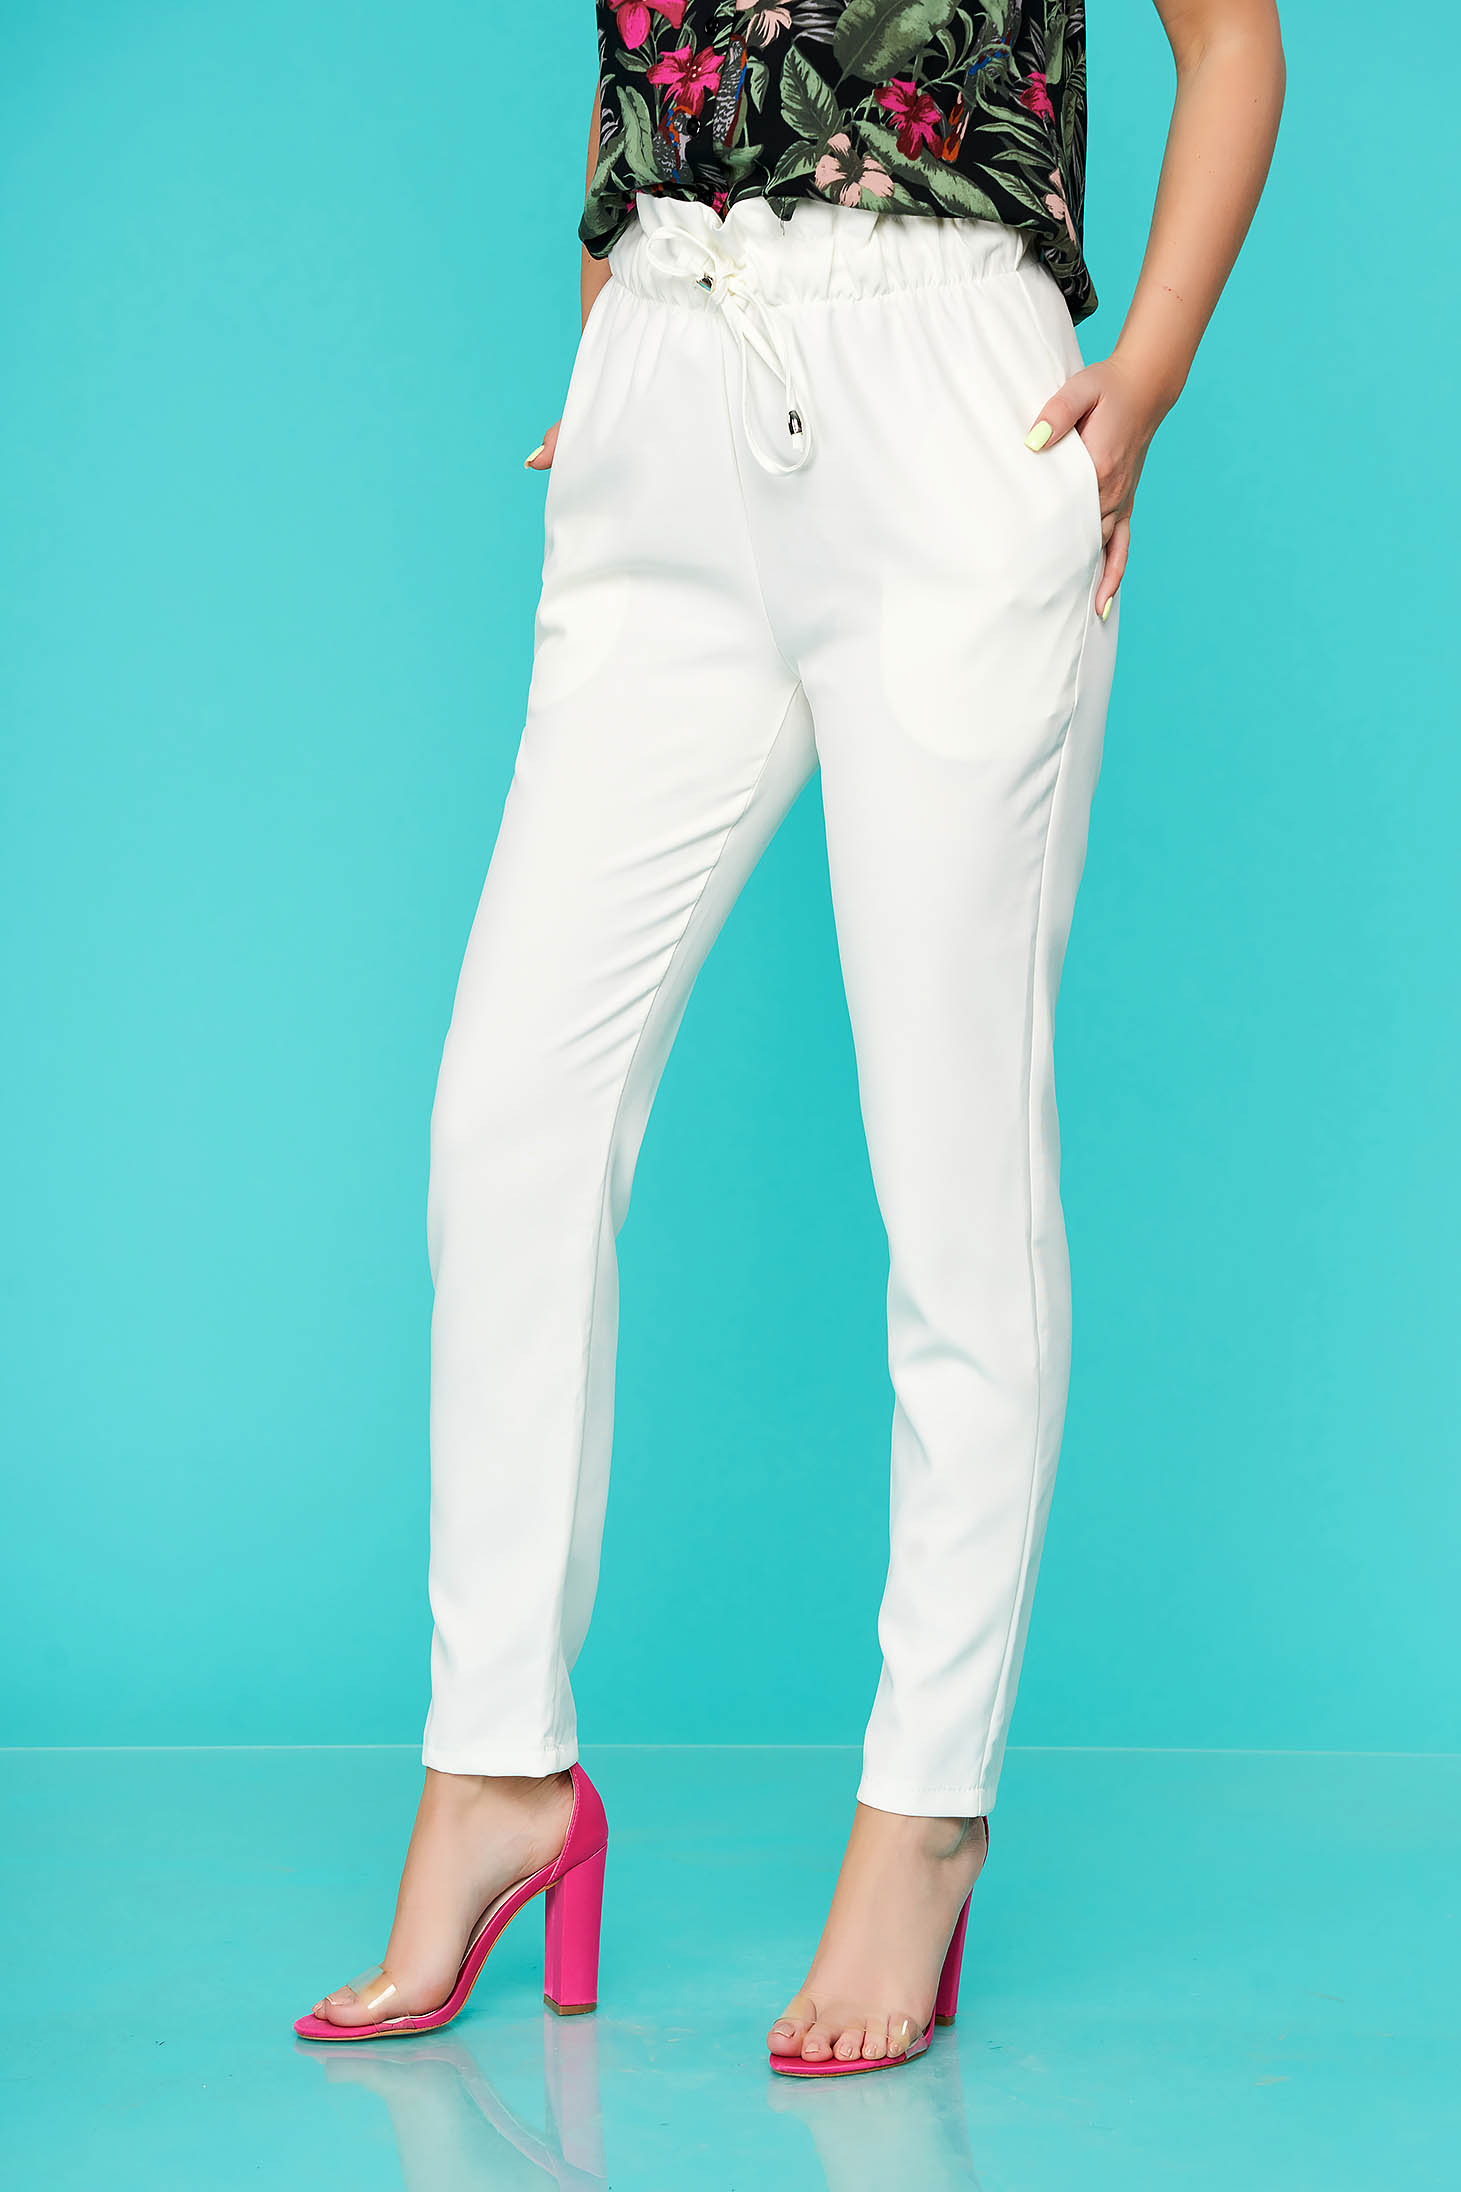 White trousers casual thin fabric with elastic waist with pockets